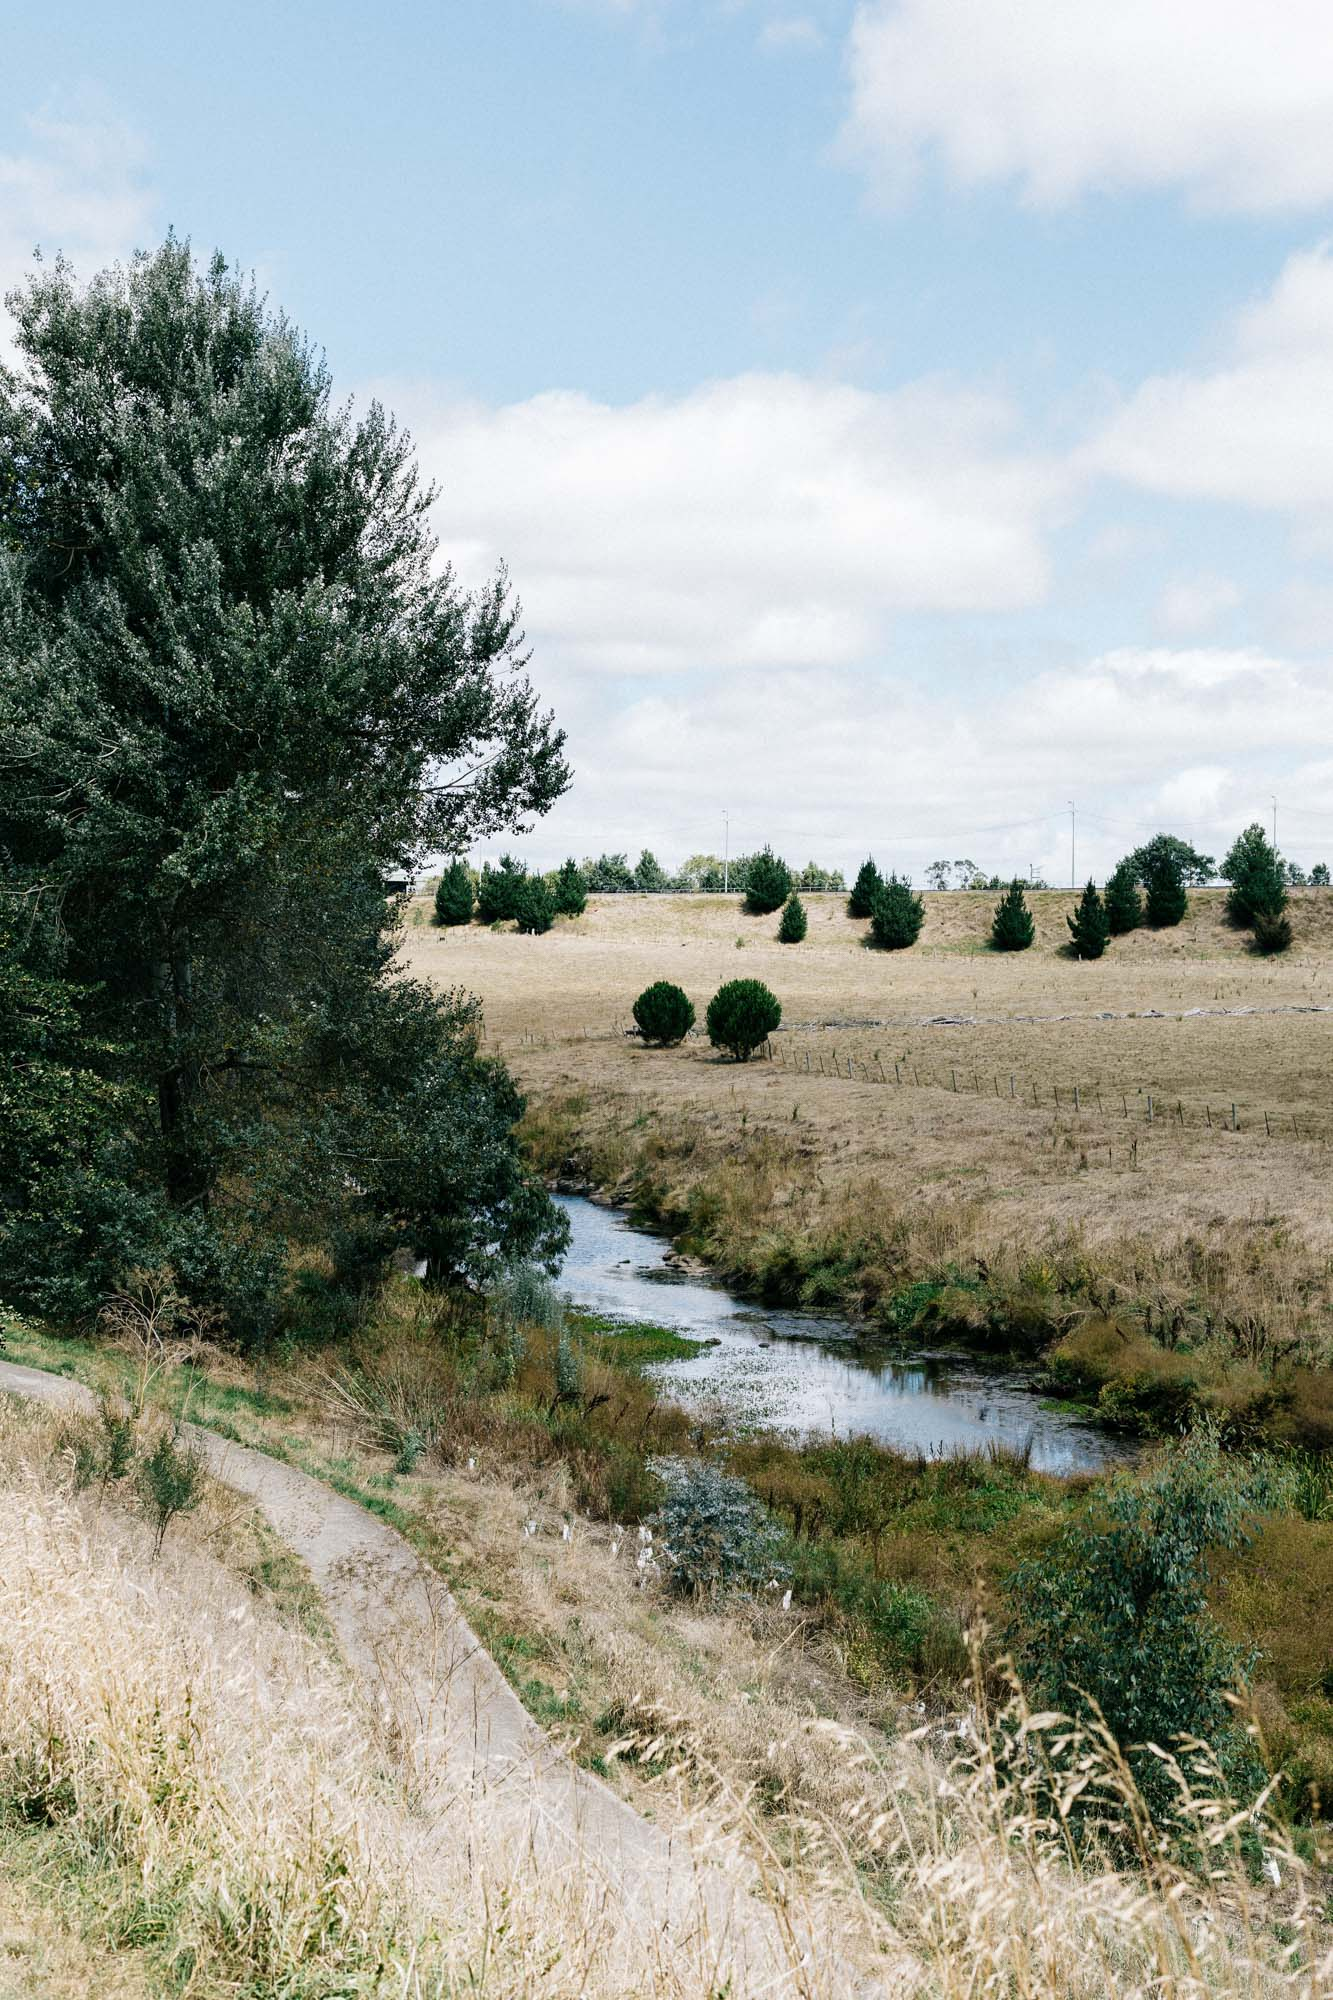 Marnie Hawson, Melbourne lifestyle photographer for Country Style and Kyneton travel story